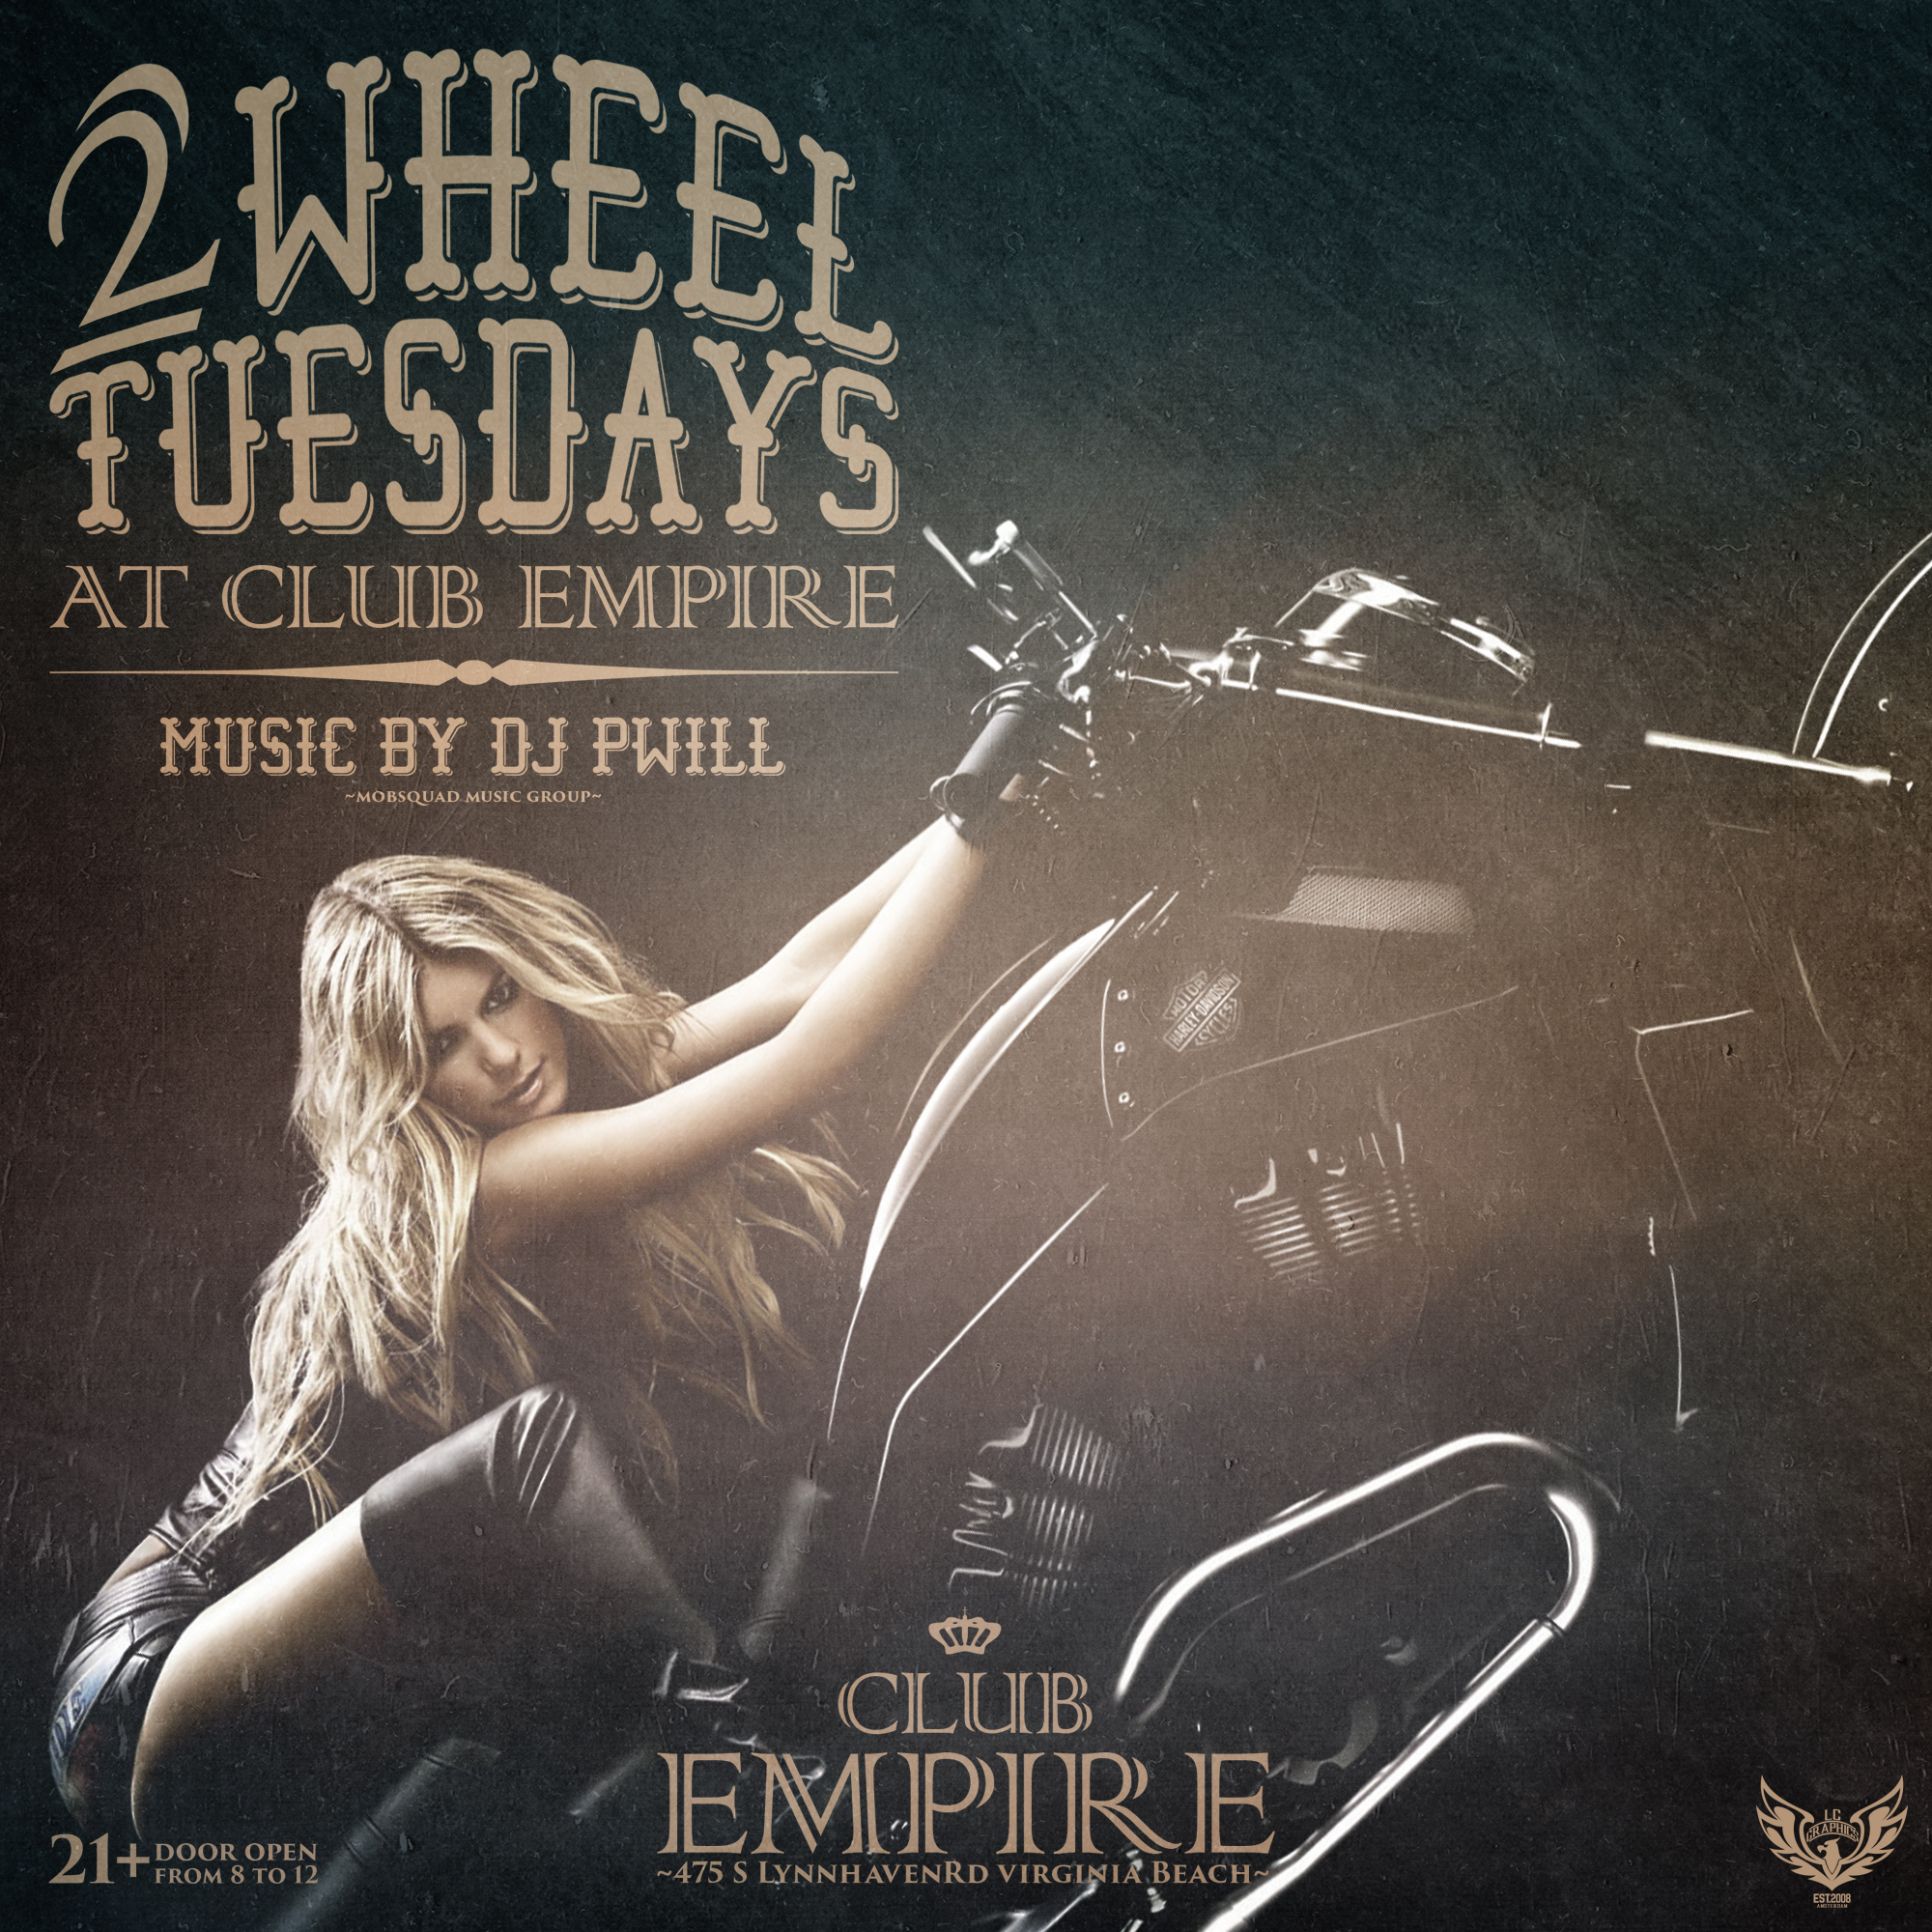 Club Empire - 2Wheel Tuesdays (music by DJ PWill) flyer (byLCGraphics)